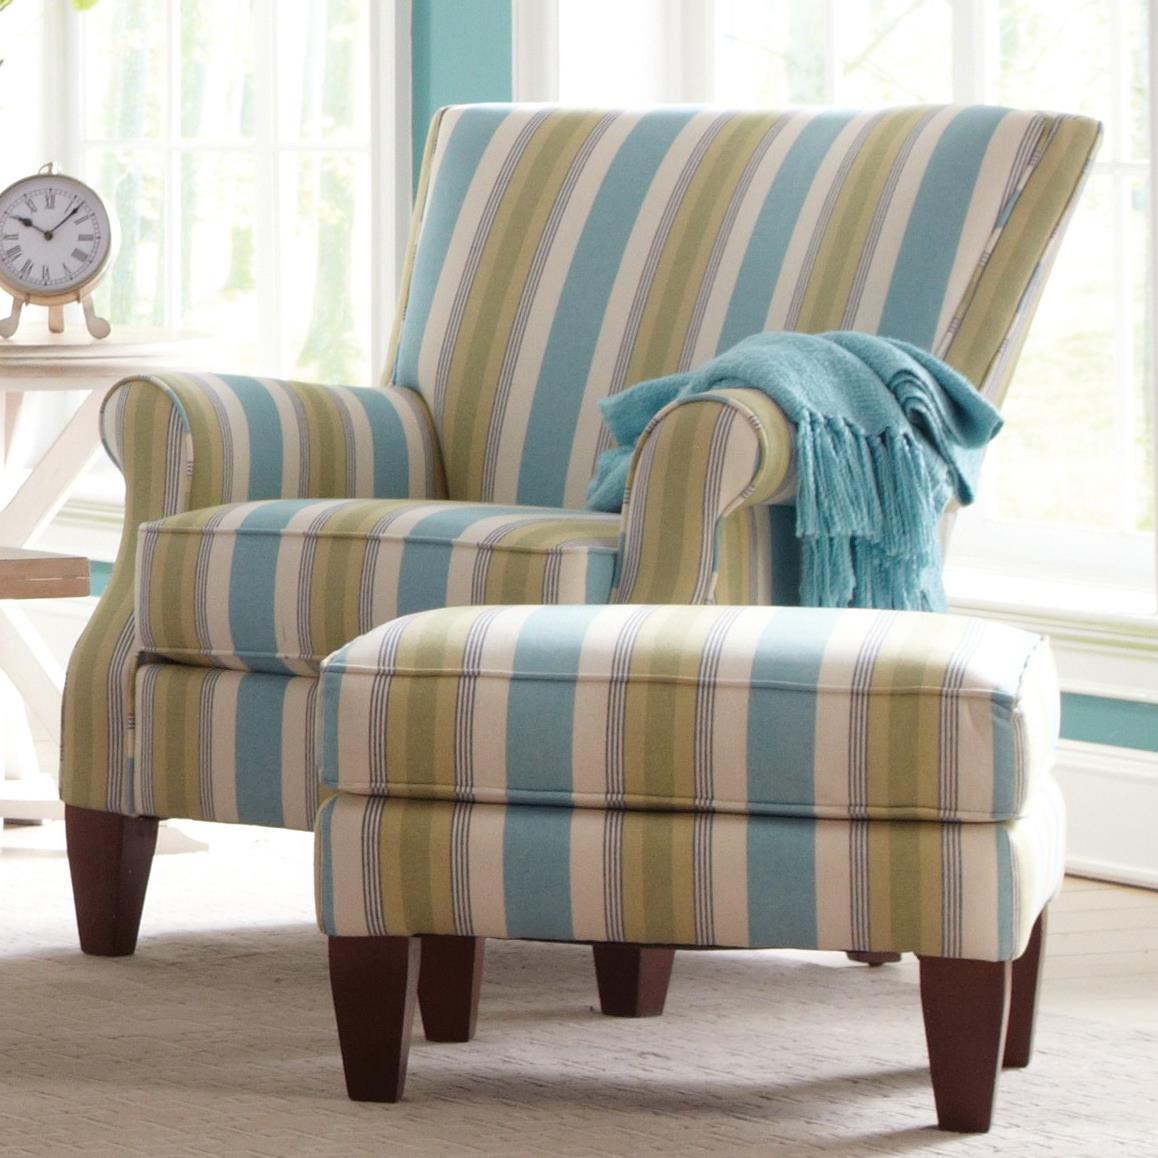 Accent Chairs Chair and Ottoman Set by Craftmaster at Baer's Furniture